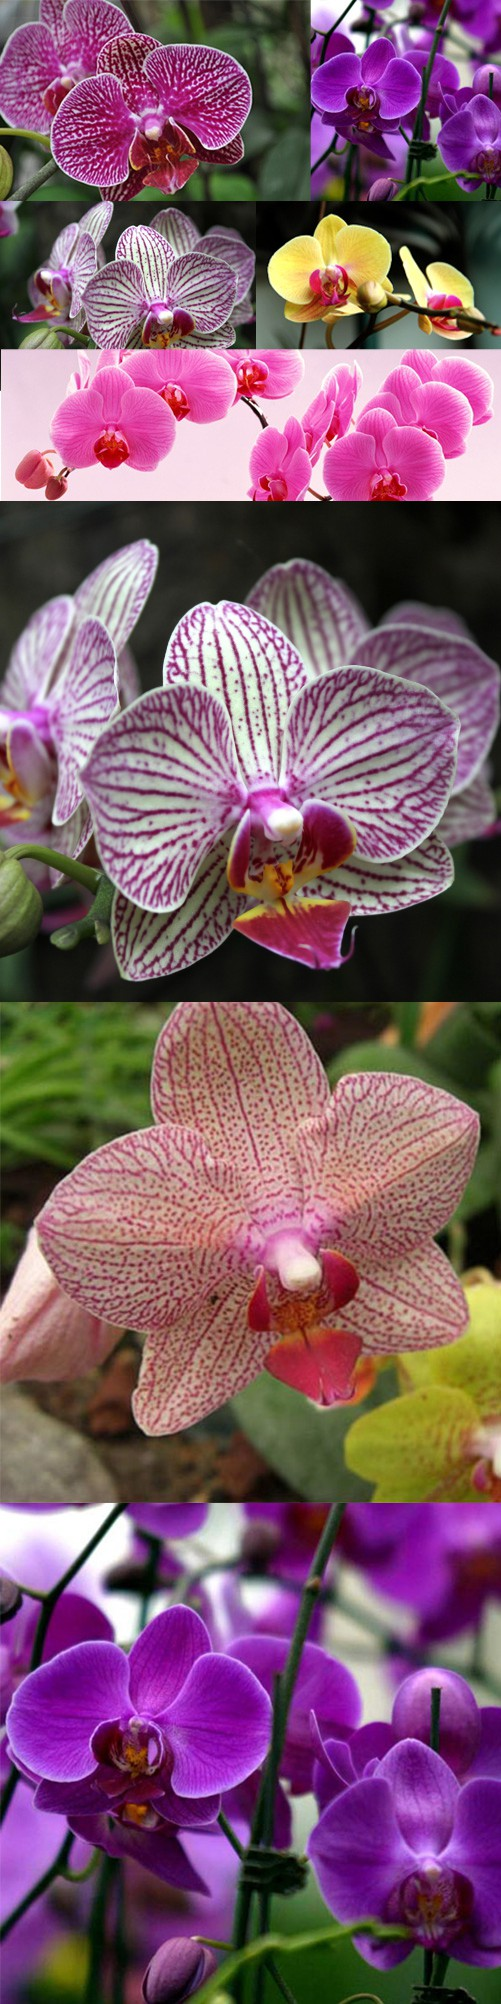 New rare pcs mix color phalaenopsis flower seeds bonsai butterfly